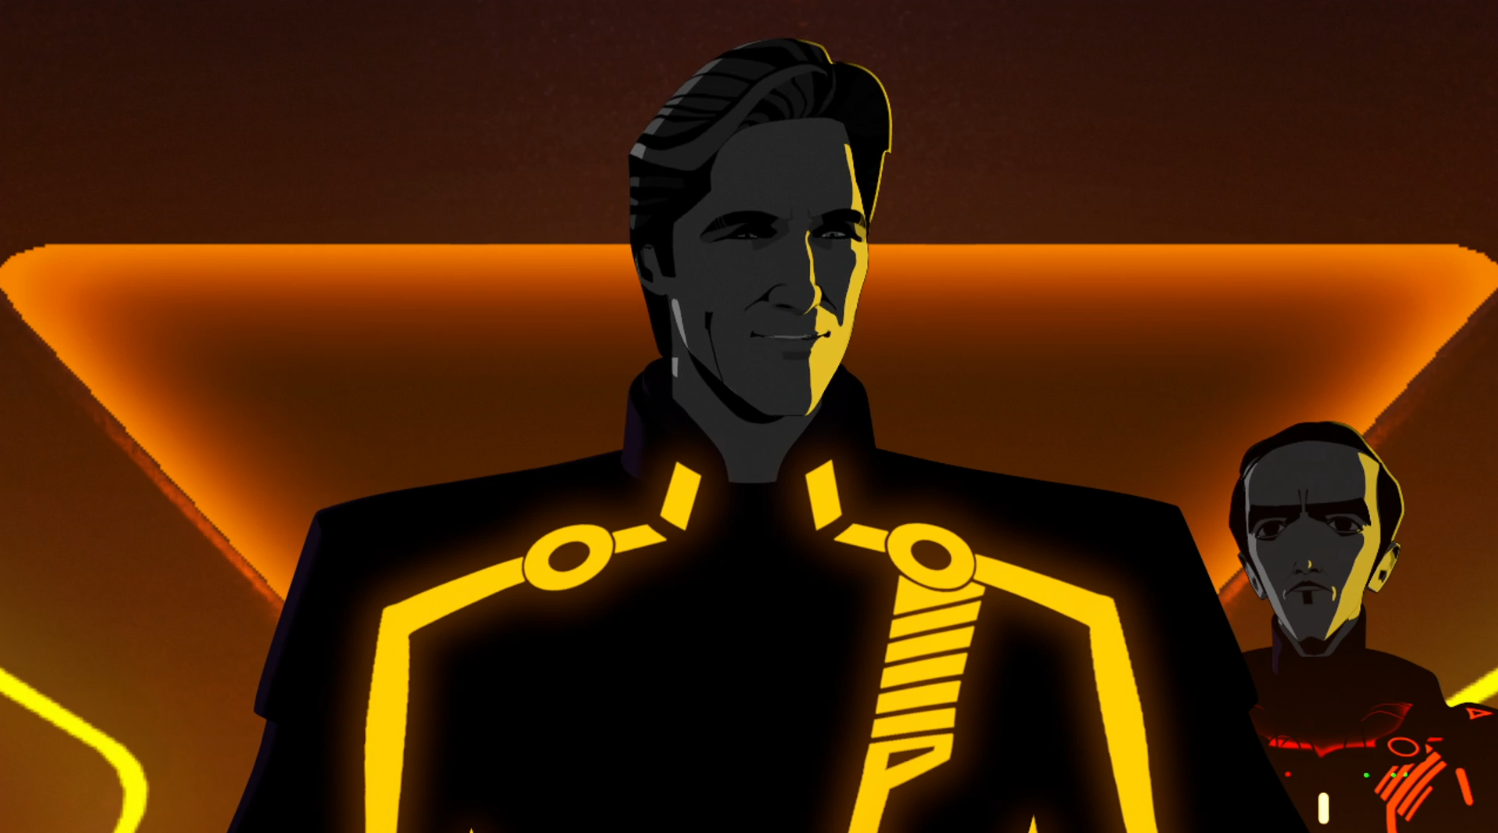 CLU and Dyson - Terminal - Terminal - Tron: Uprising